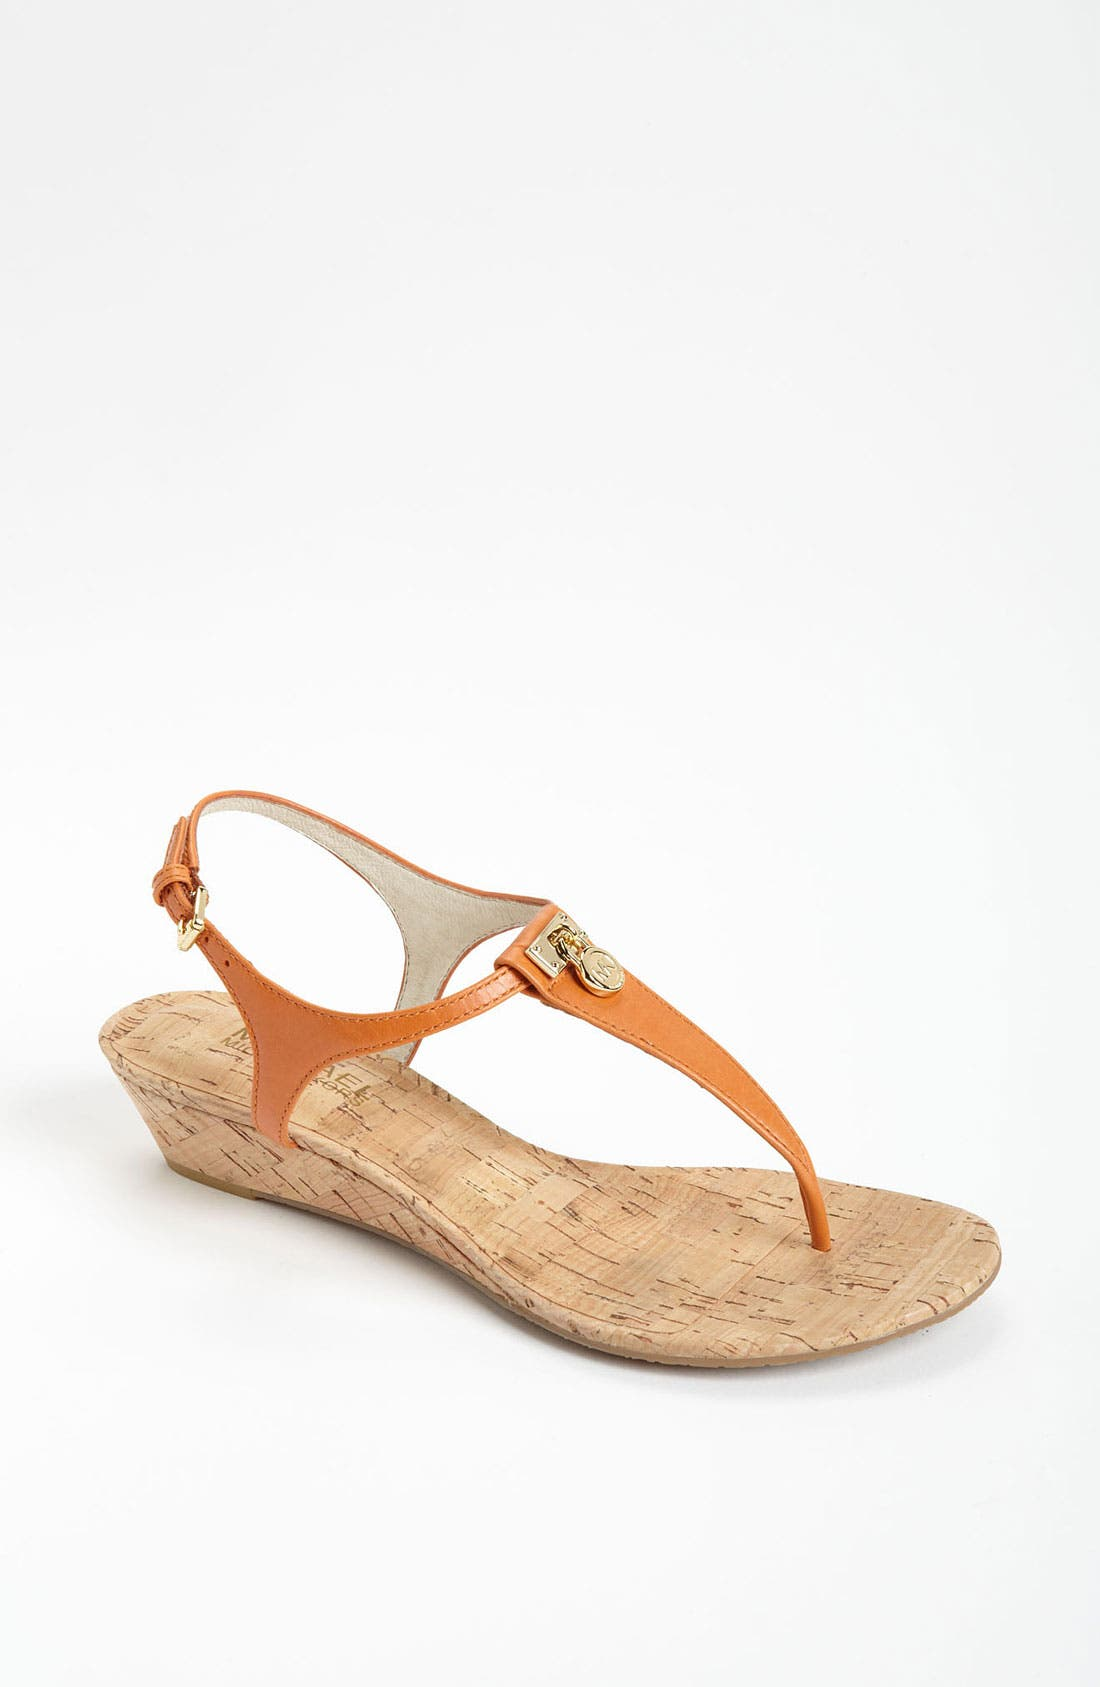 Alternate Image 1 Selected - MICHAEL Michael Kors 'Hamilton' Sandal